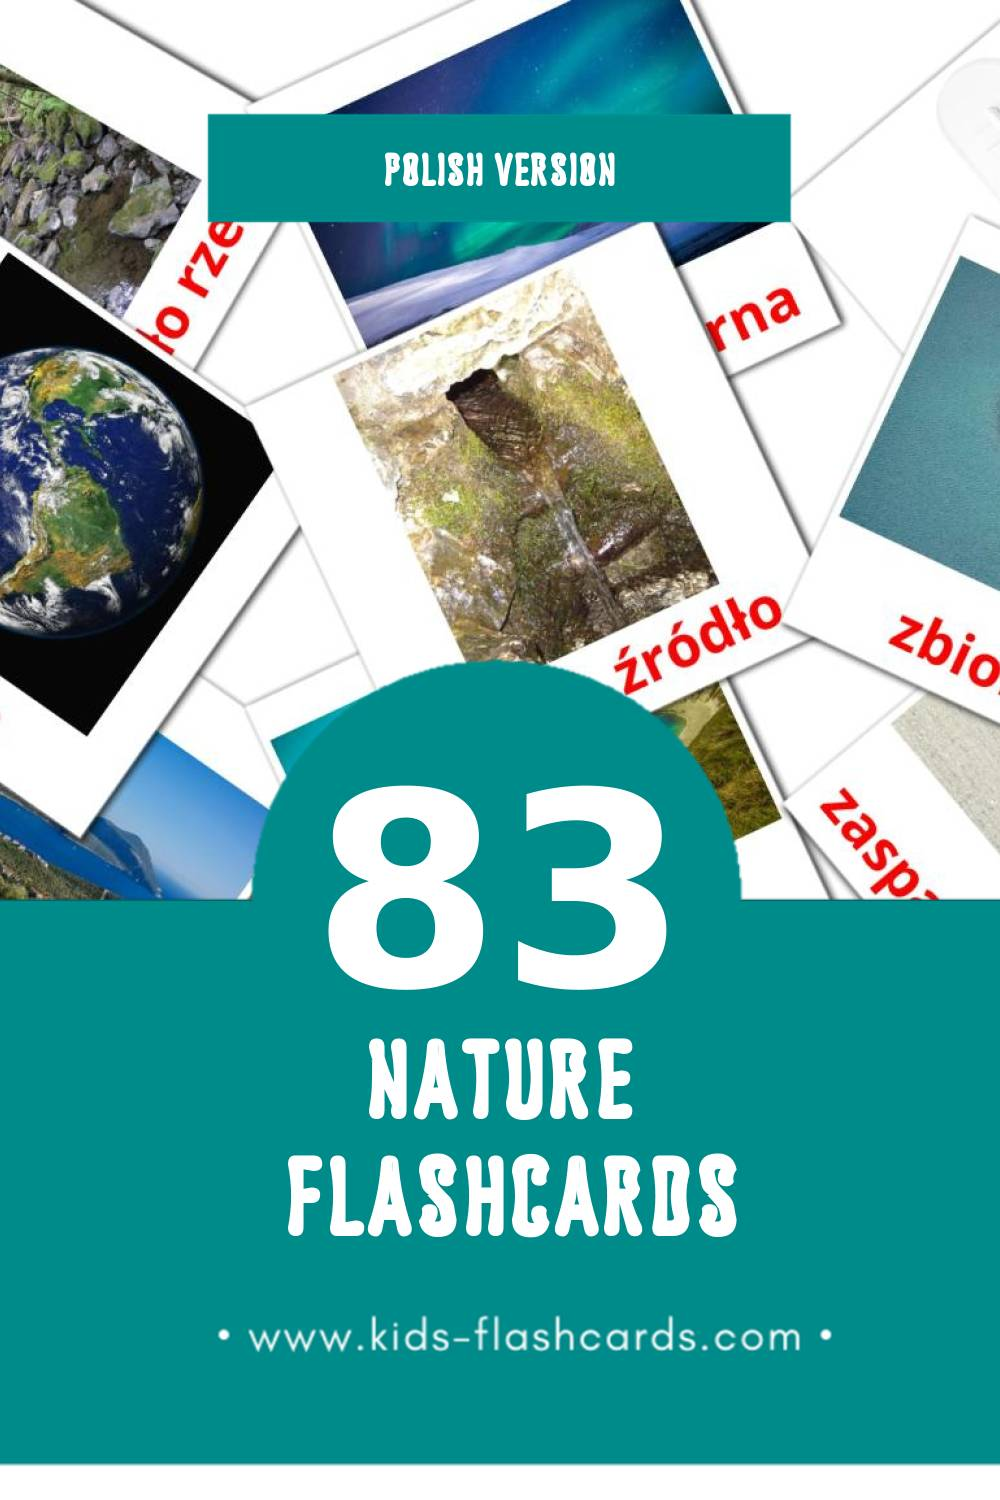 Visual Natura Flashcards for Toddlers (52 cards in Polish)